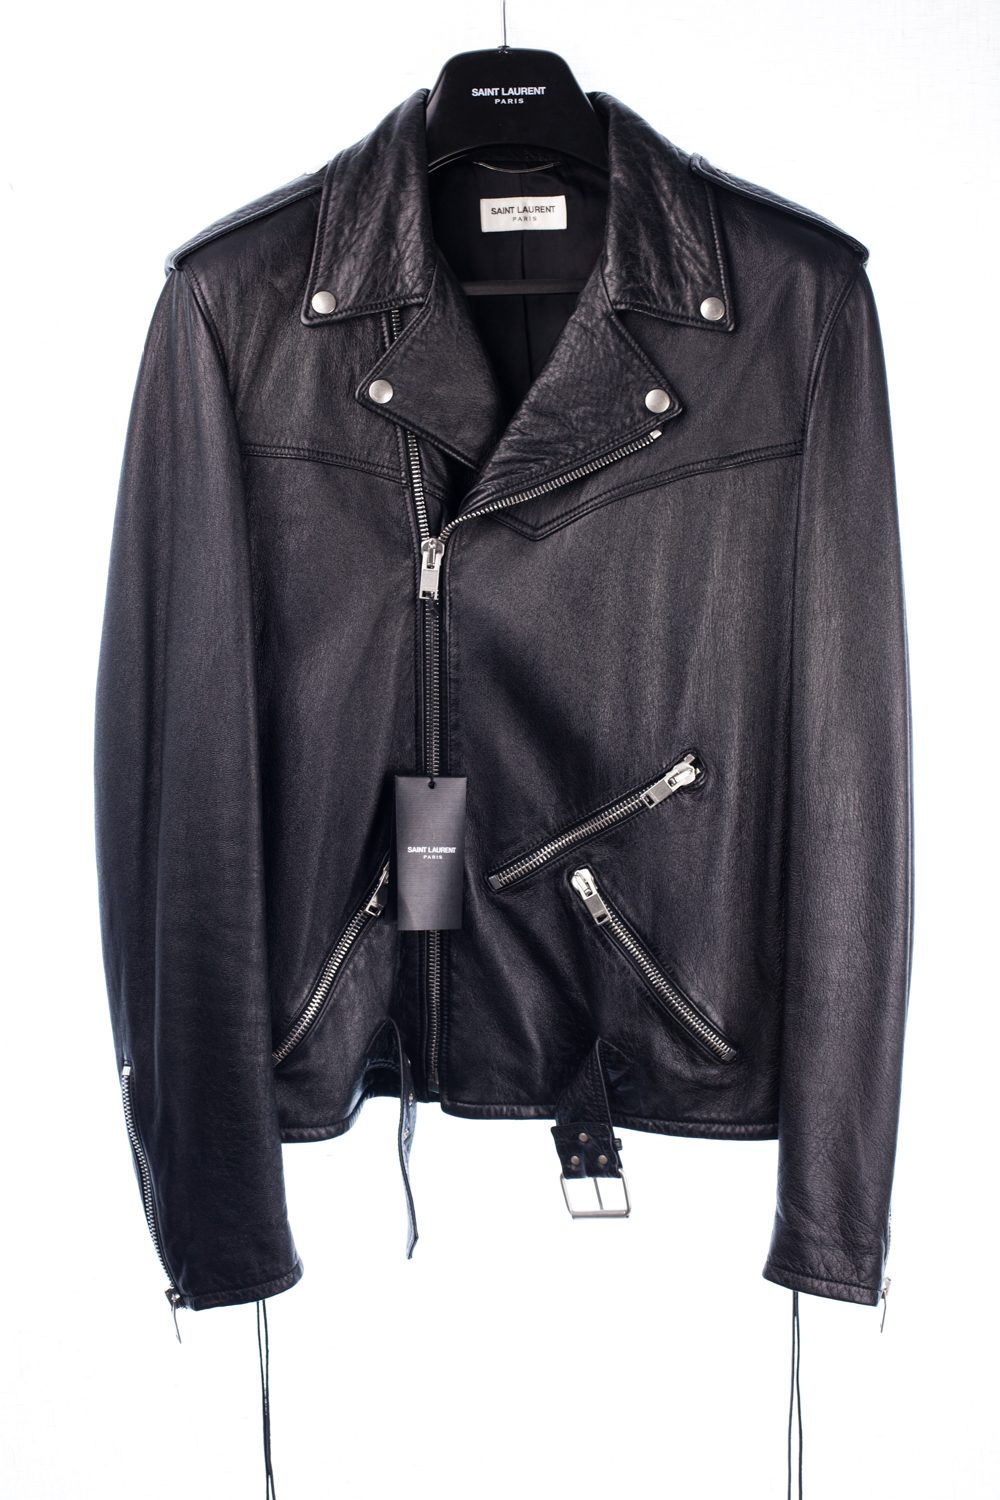 NWT SS16 Lace Up Motorcycle Jacket